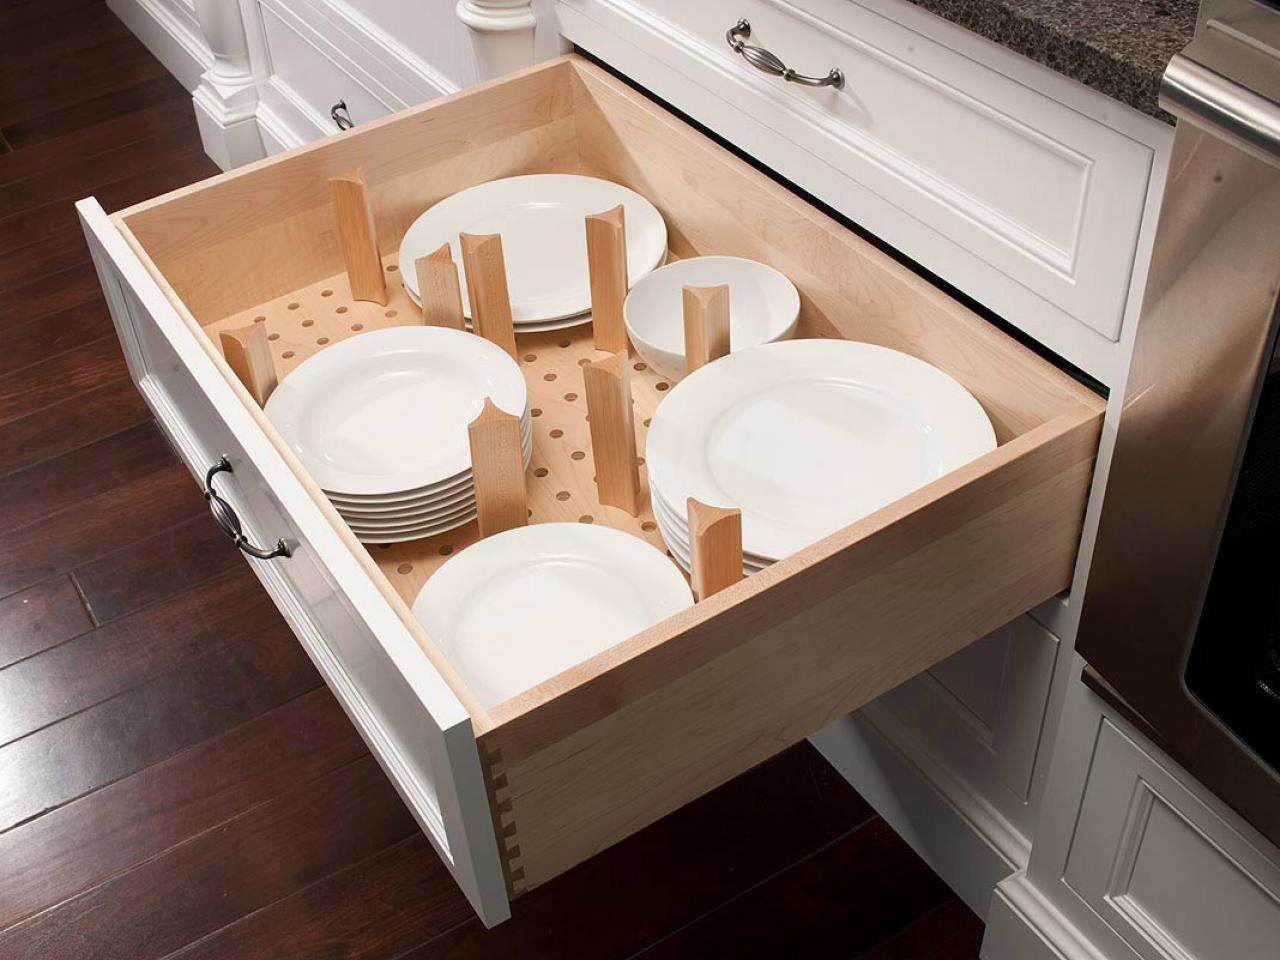 Easy stylish and functional diy drawer dividers diy Organizing kitchen cabinets and drawers